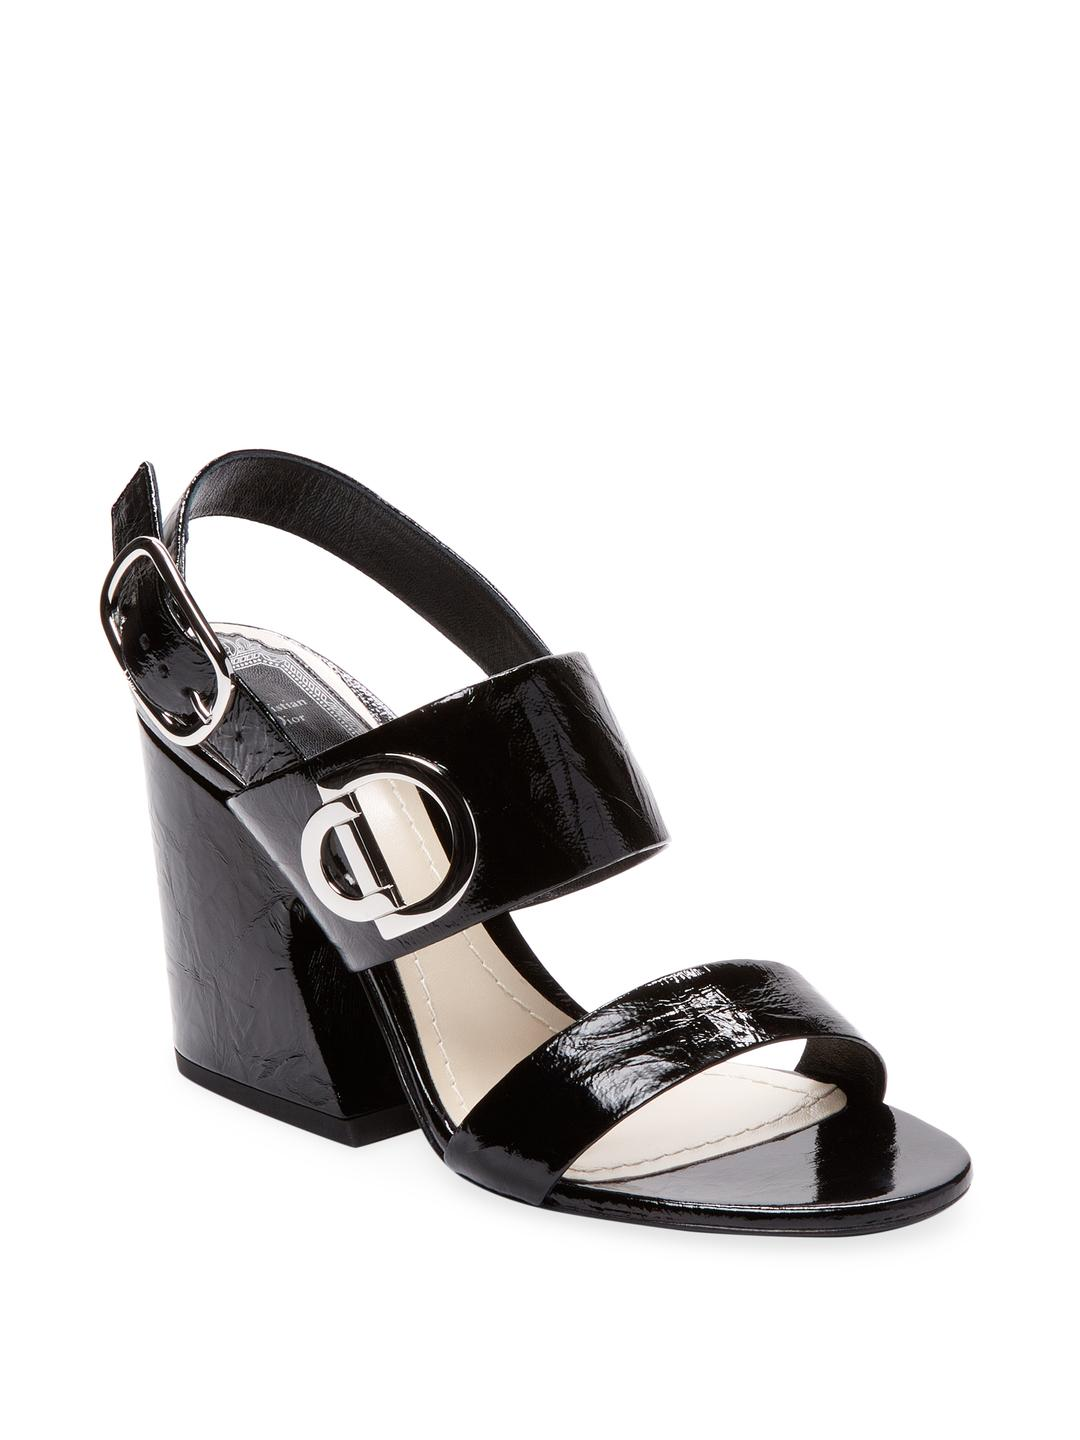 Tribe 80 leather sandal Dior oE9BY45